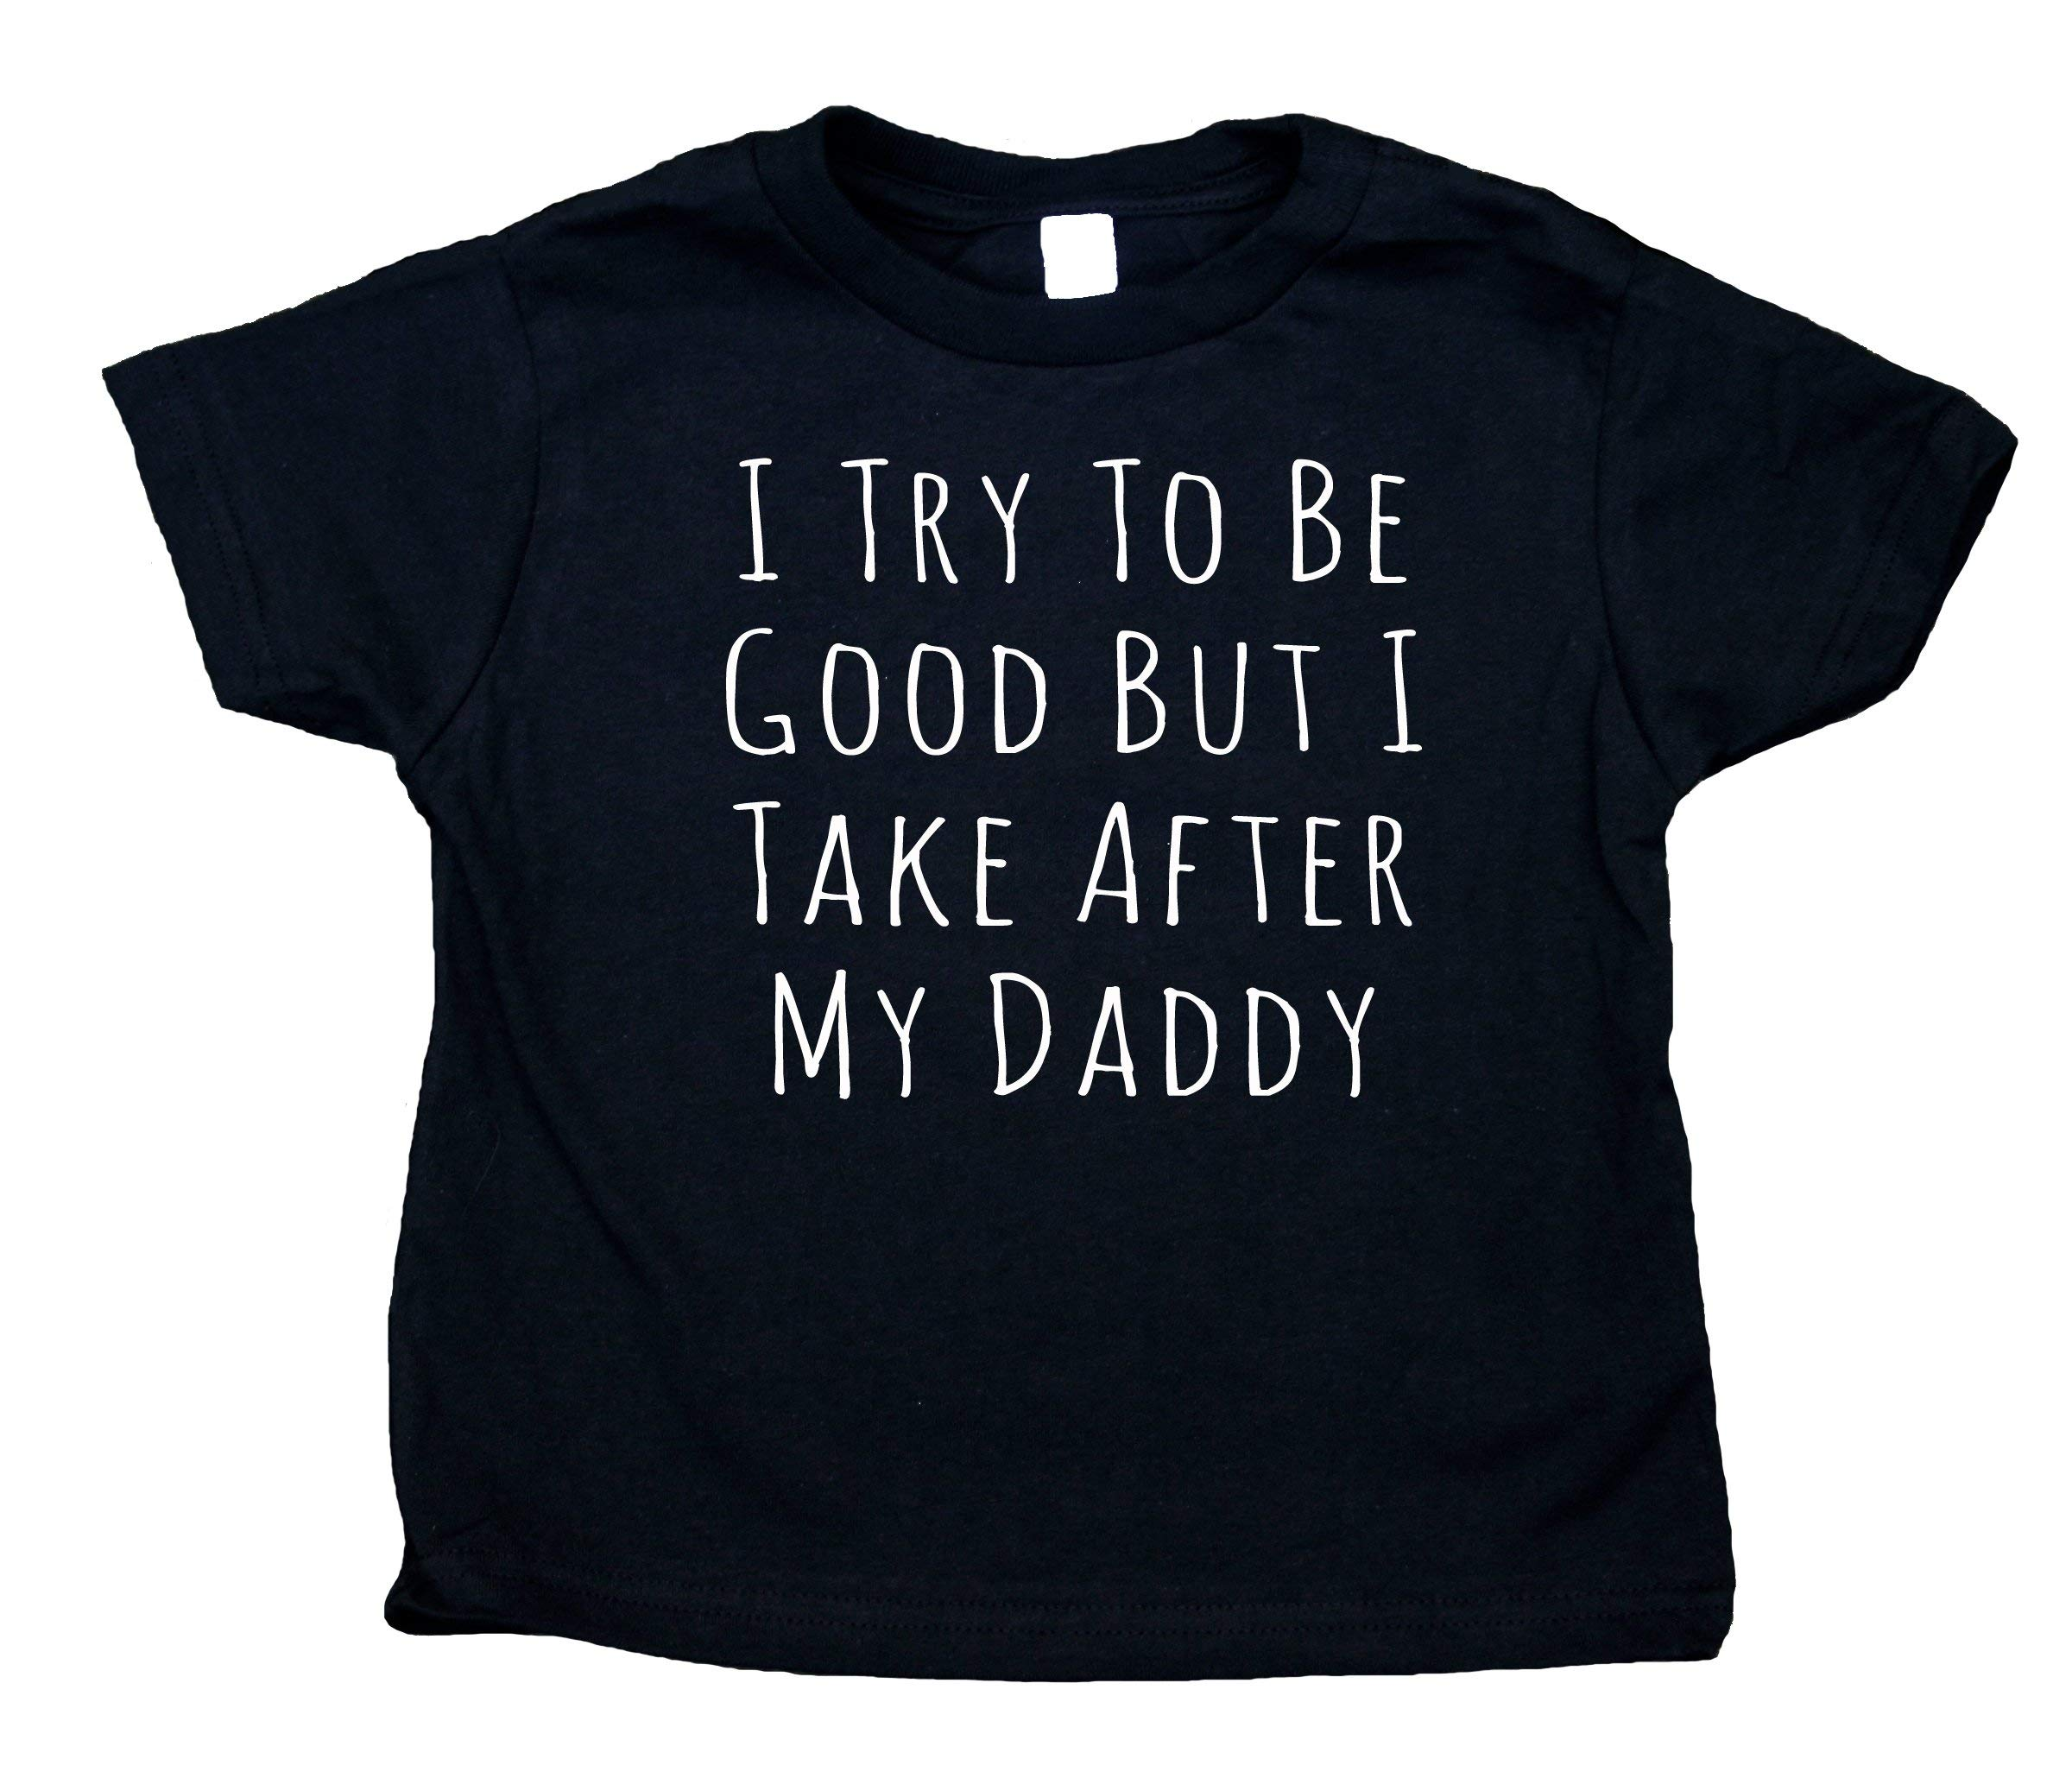 Sunray Clothing I Try to Be Good But I Take After My Daddy Toddler Shirt Funny Dad Boy Girl Kids